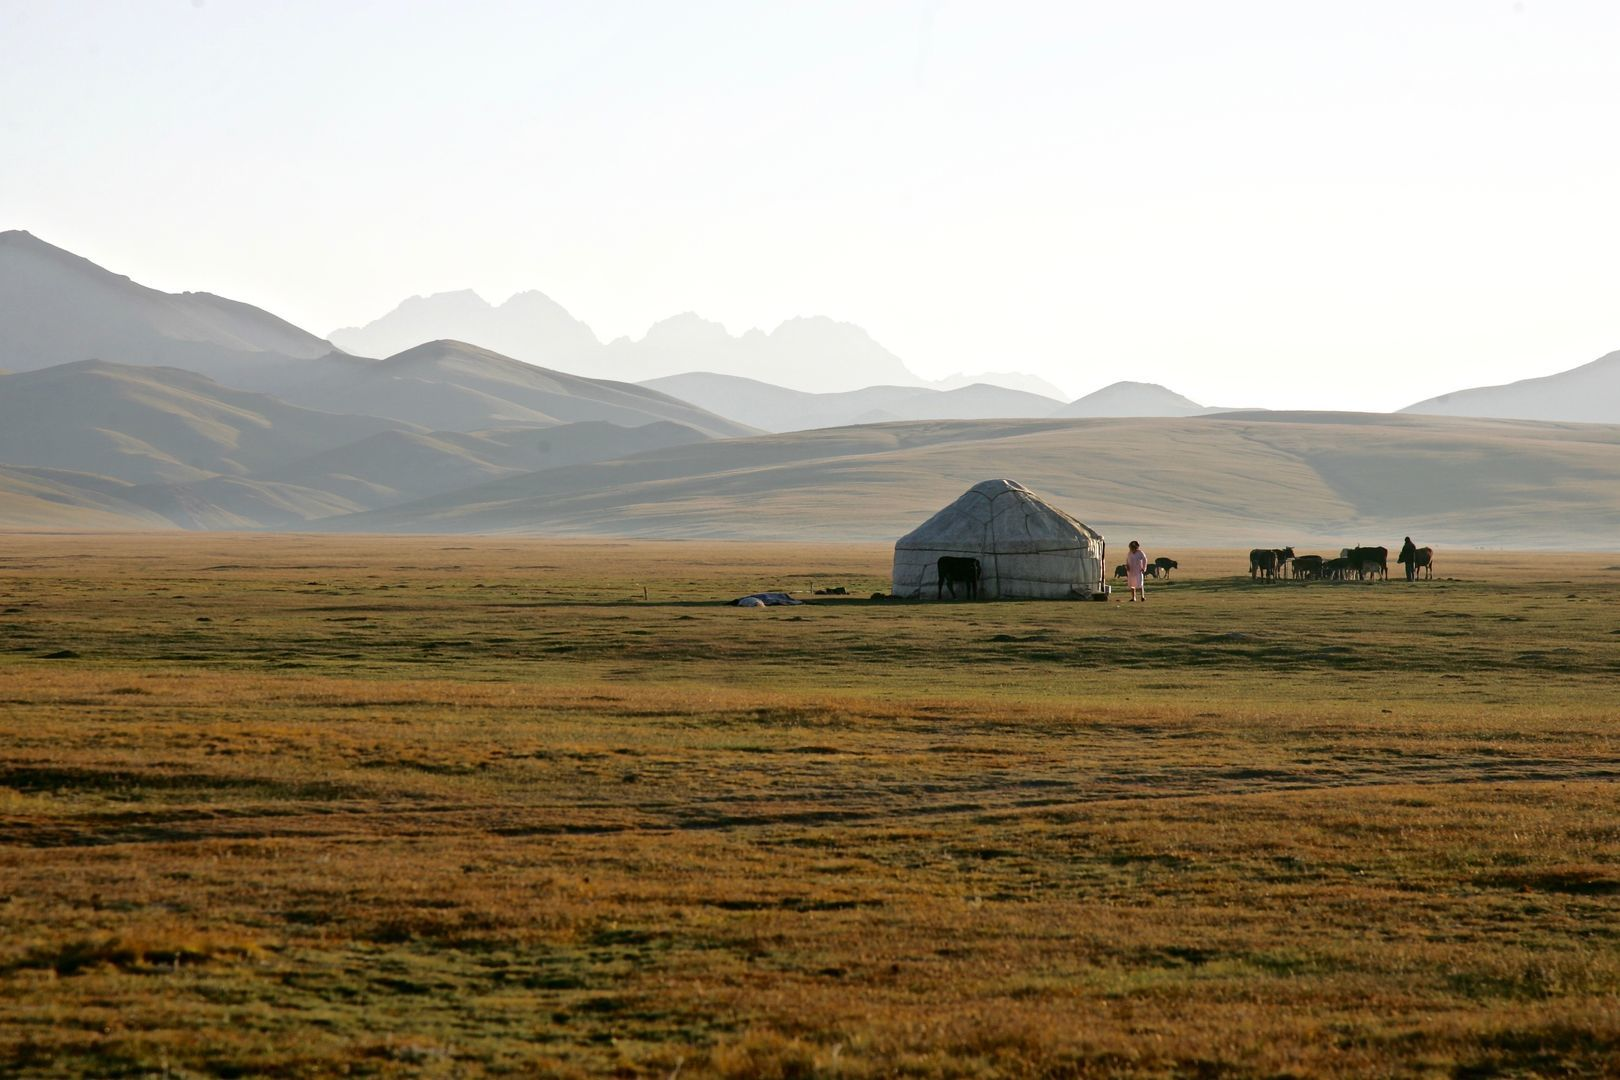 Kyrgyzstan Tour with yurts and nomad pastures